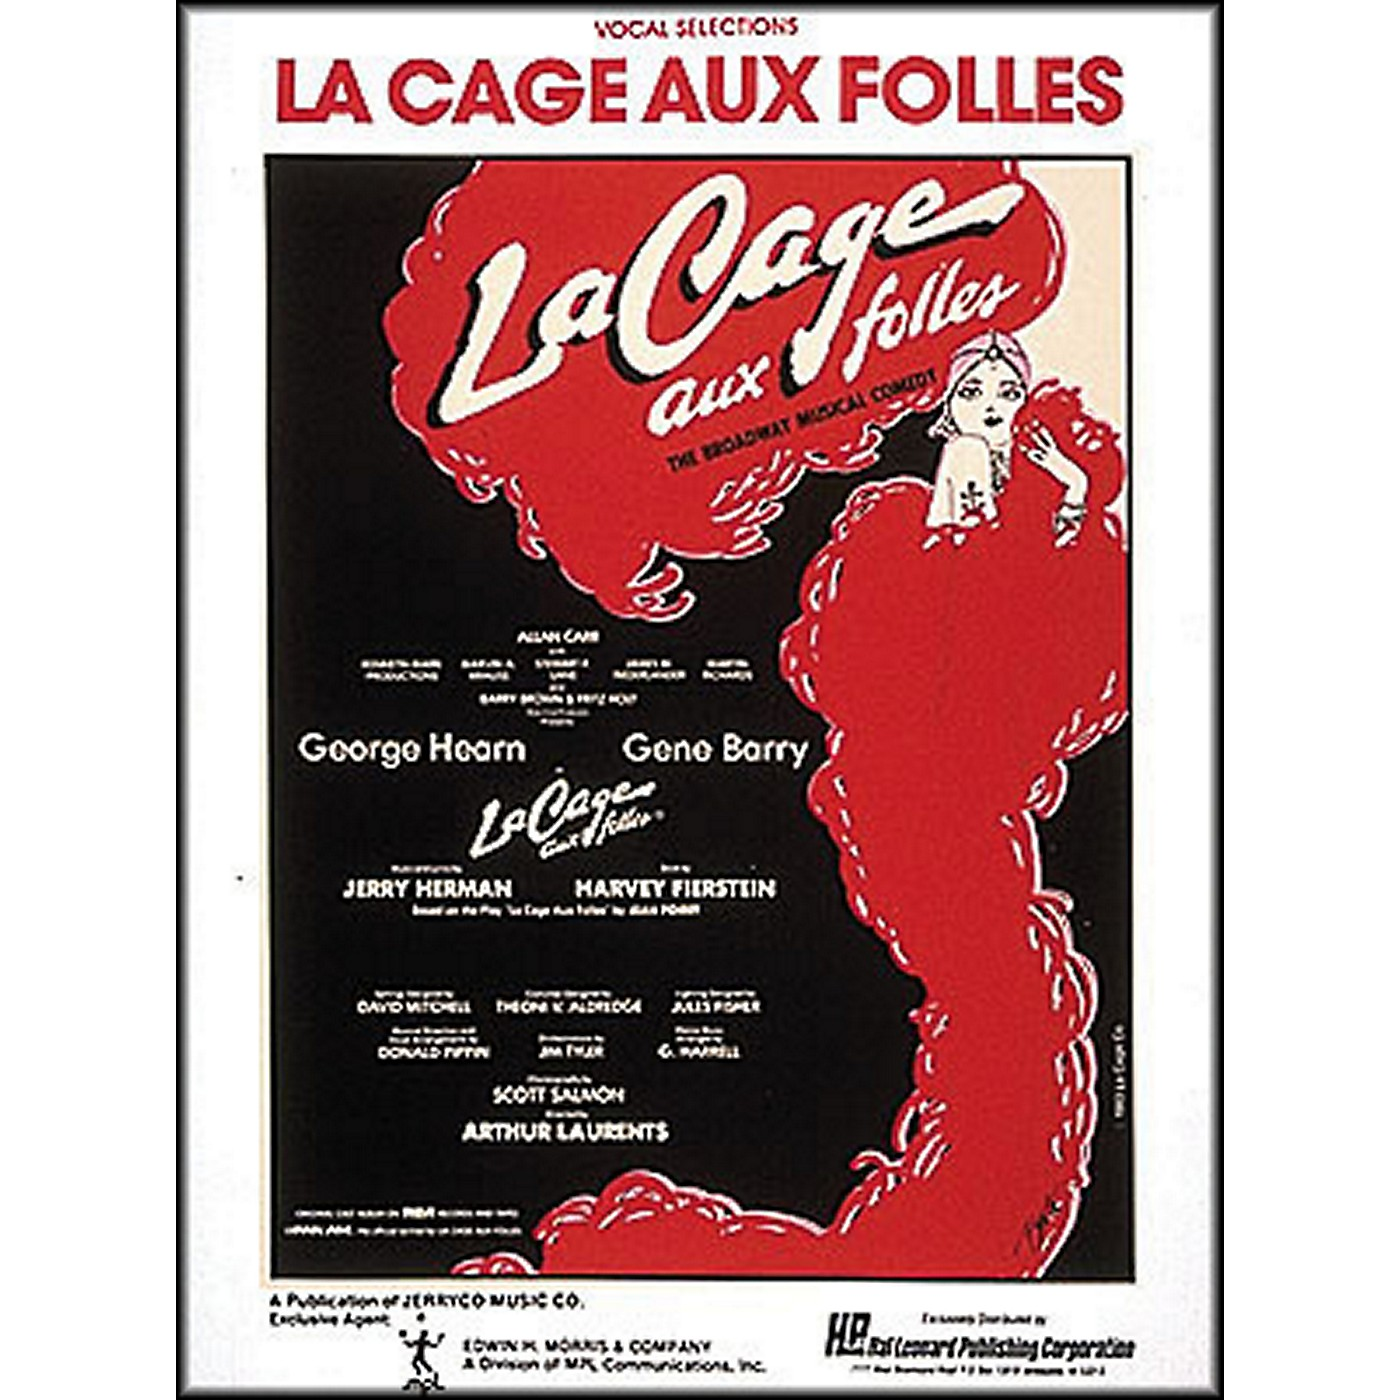 Hal Leonard La Cage Aux Folles Vocal Selections arranged for piano, vocal, and guitar (P/V/G) thumbnail